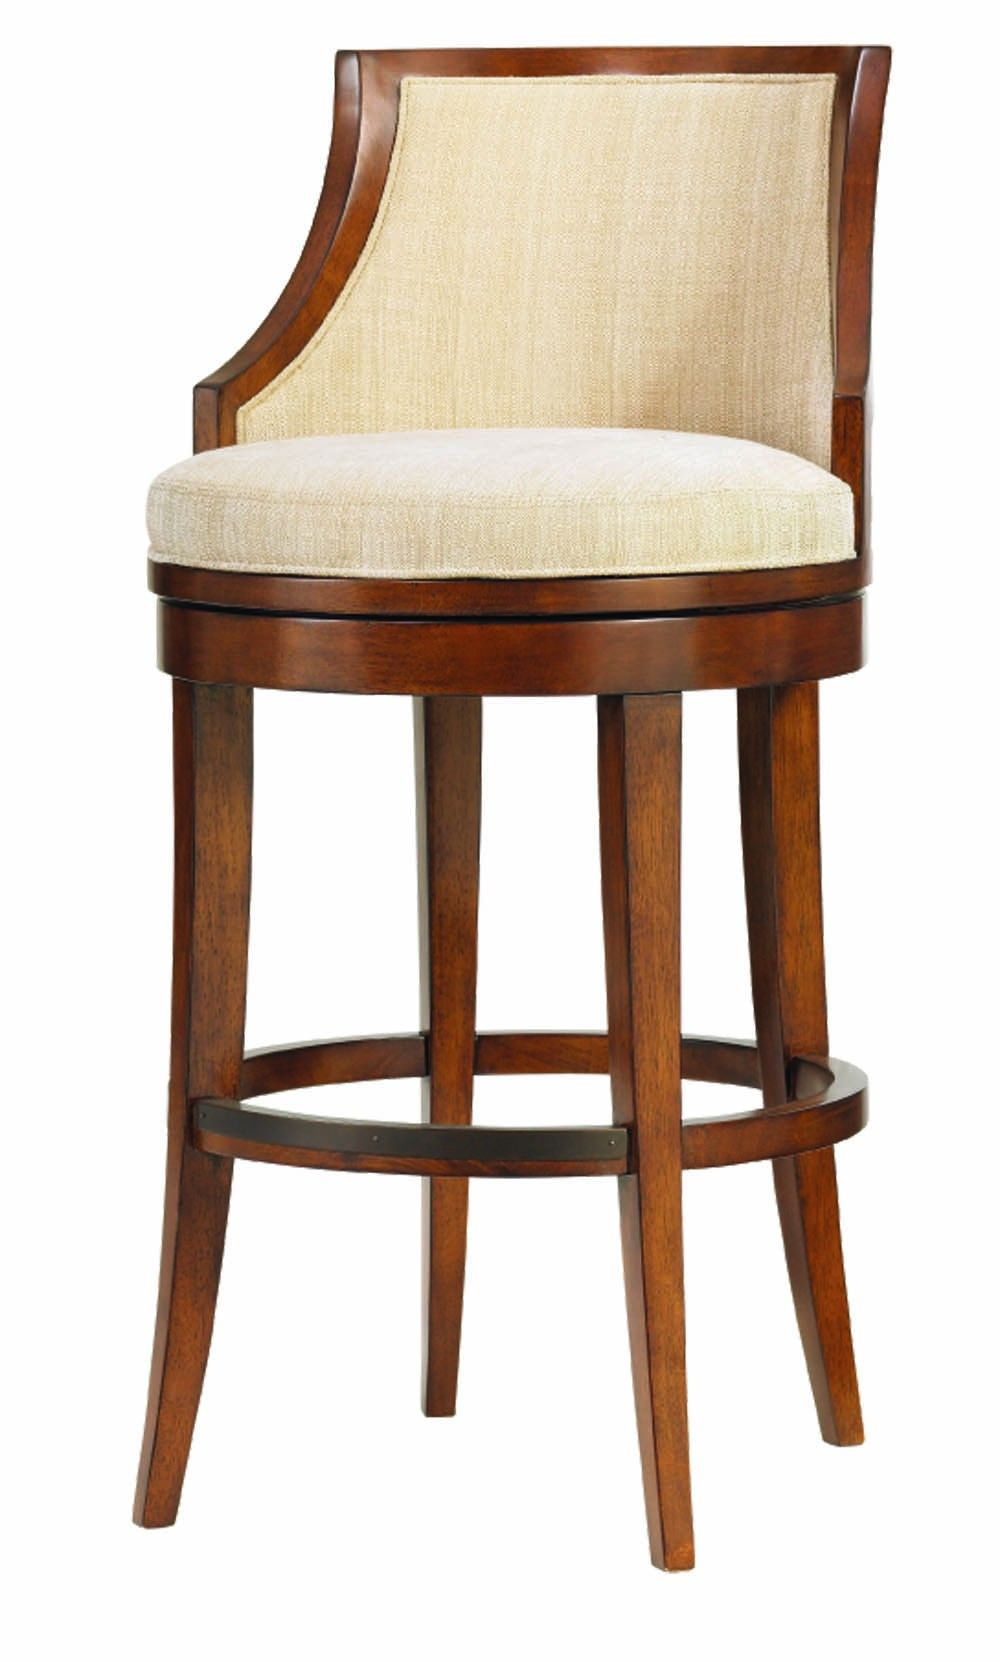 55 target bar stools clearance modern classic furniture check more at http